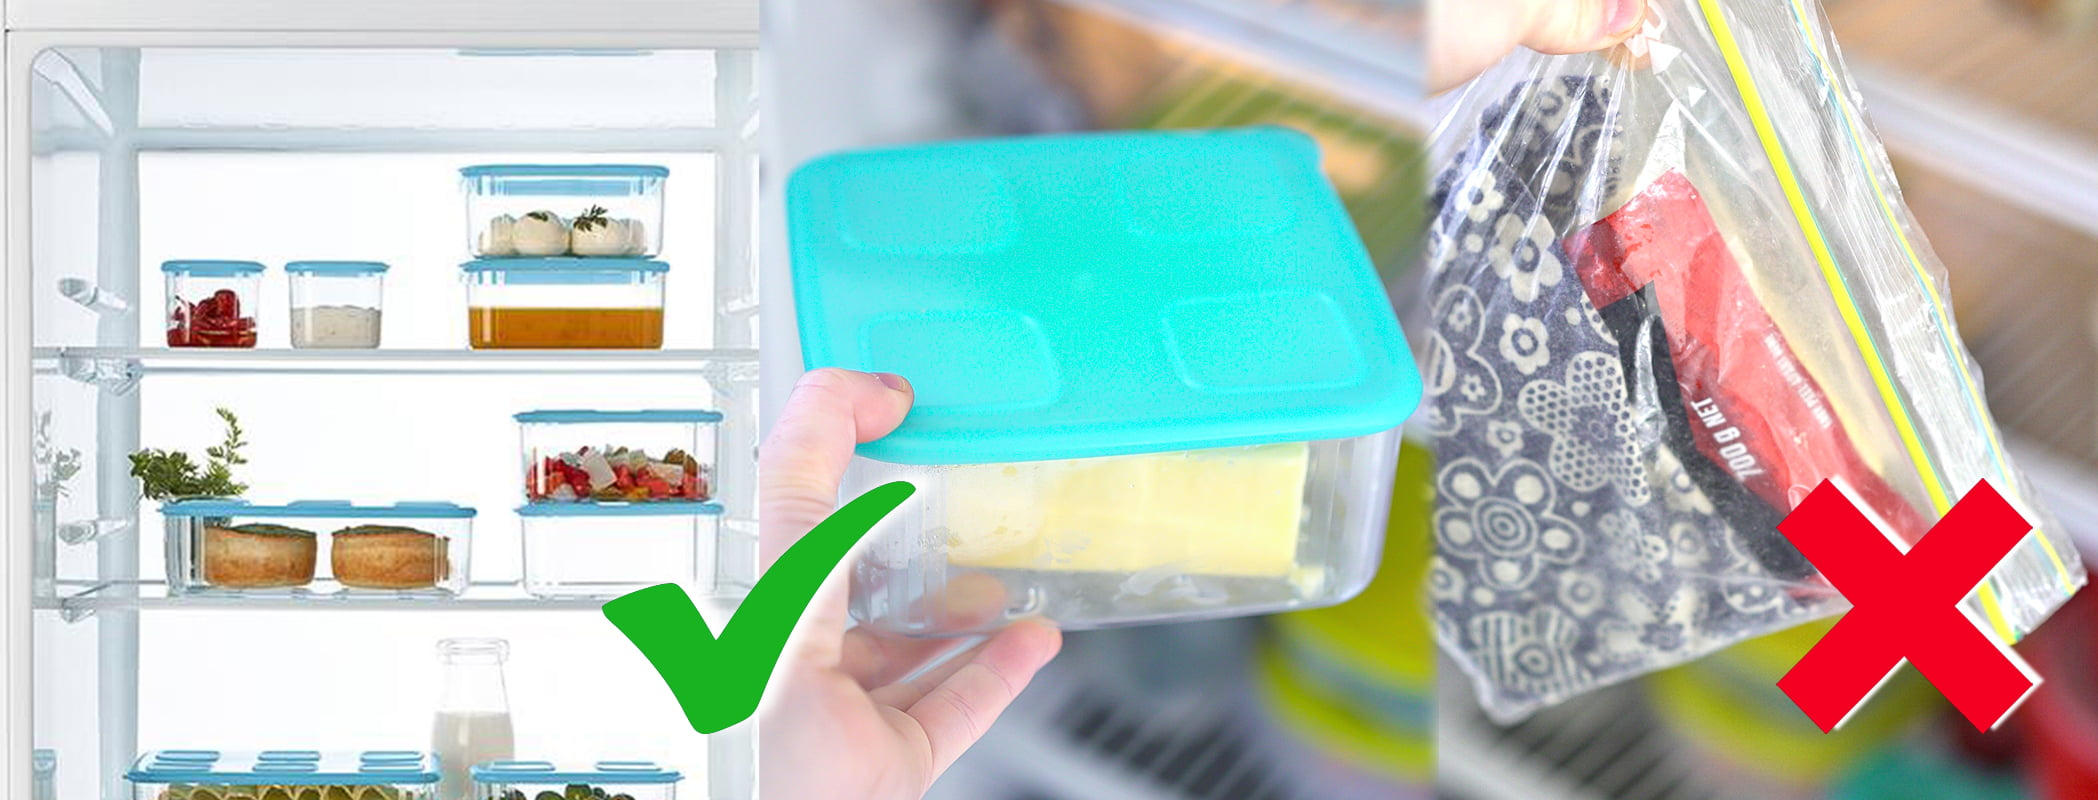 What's The Best Way To Store Cheese?